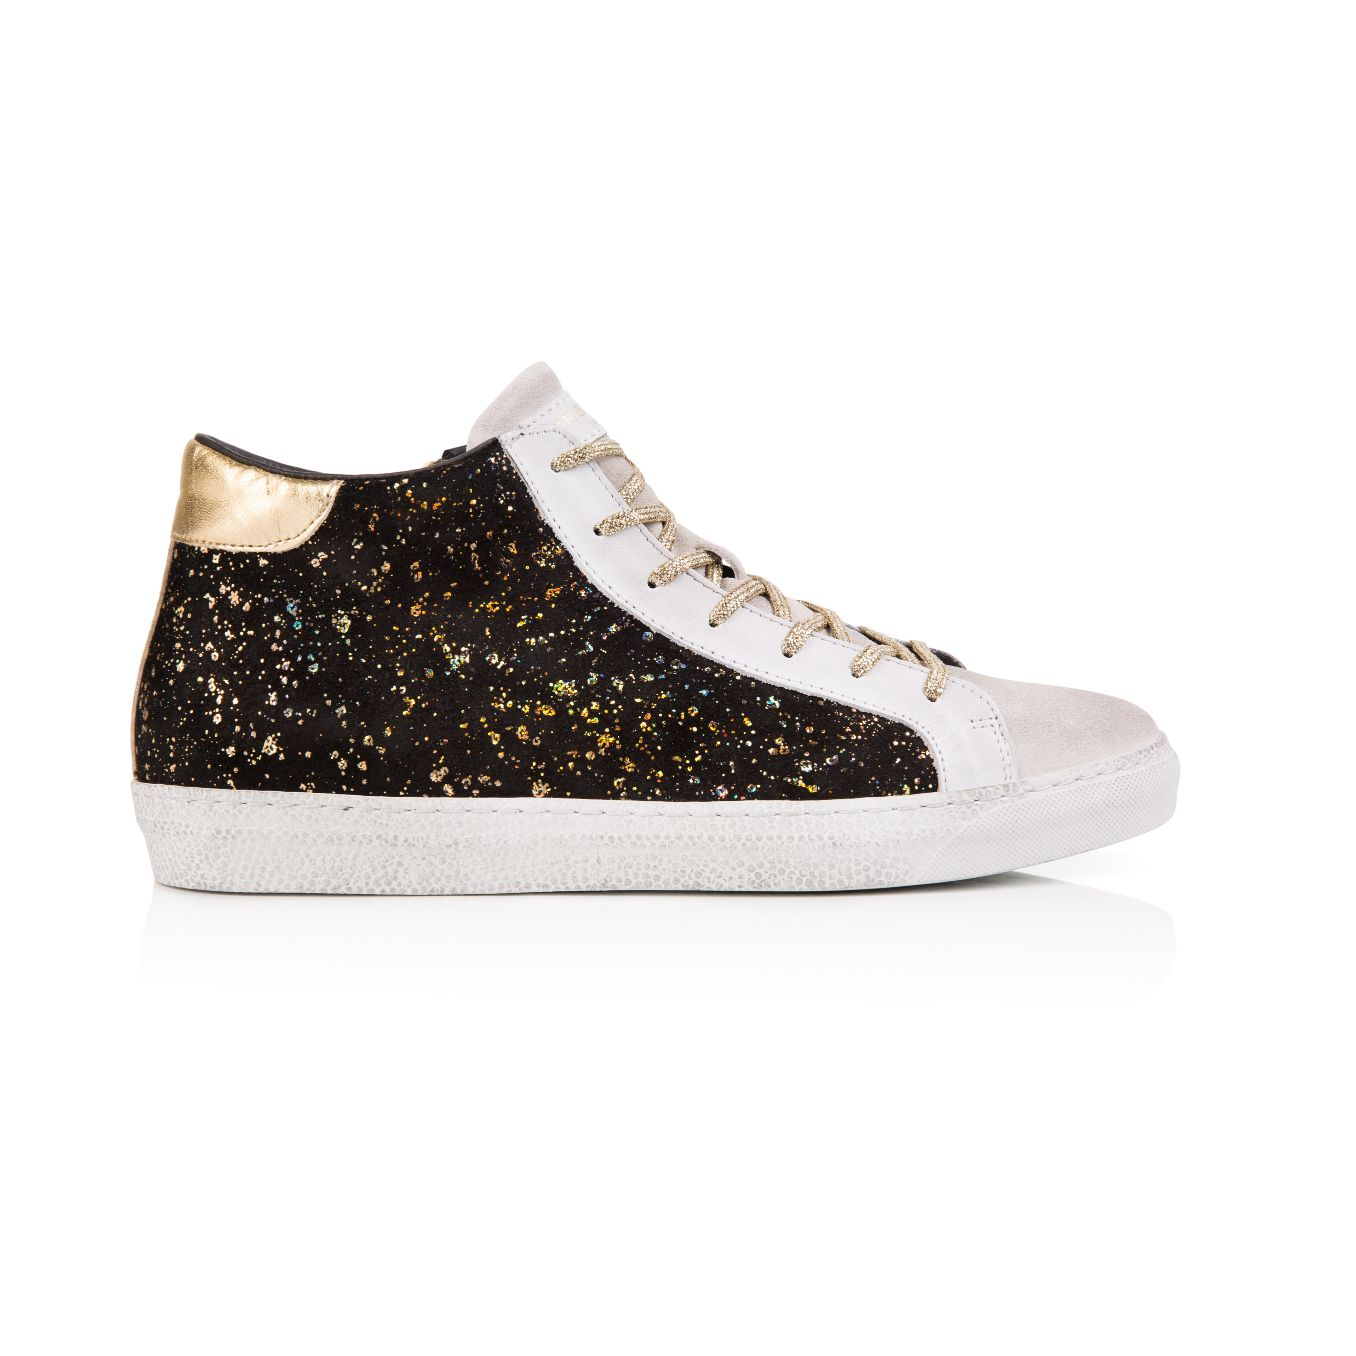 Alto: Black and Gold Suede High Top